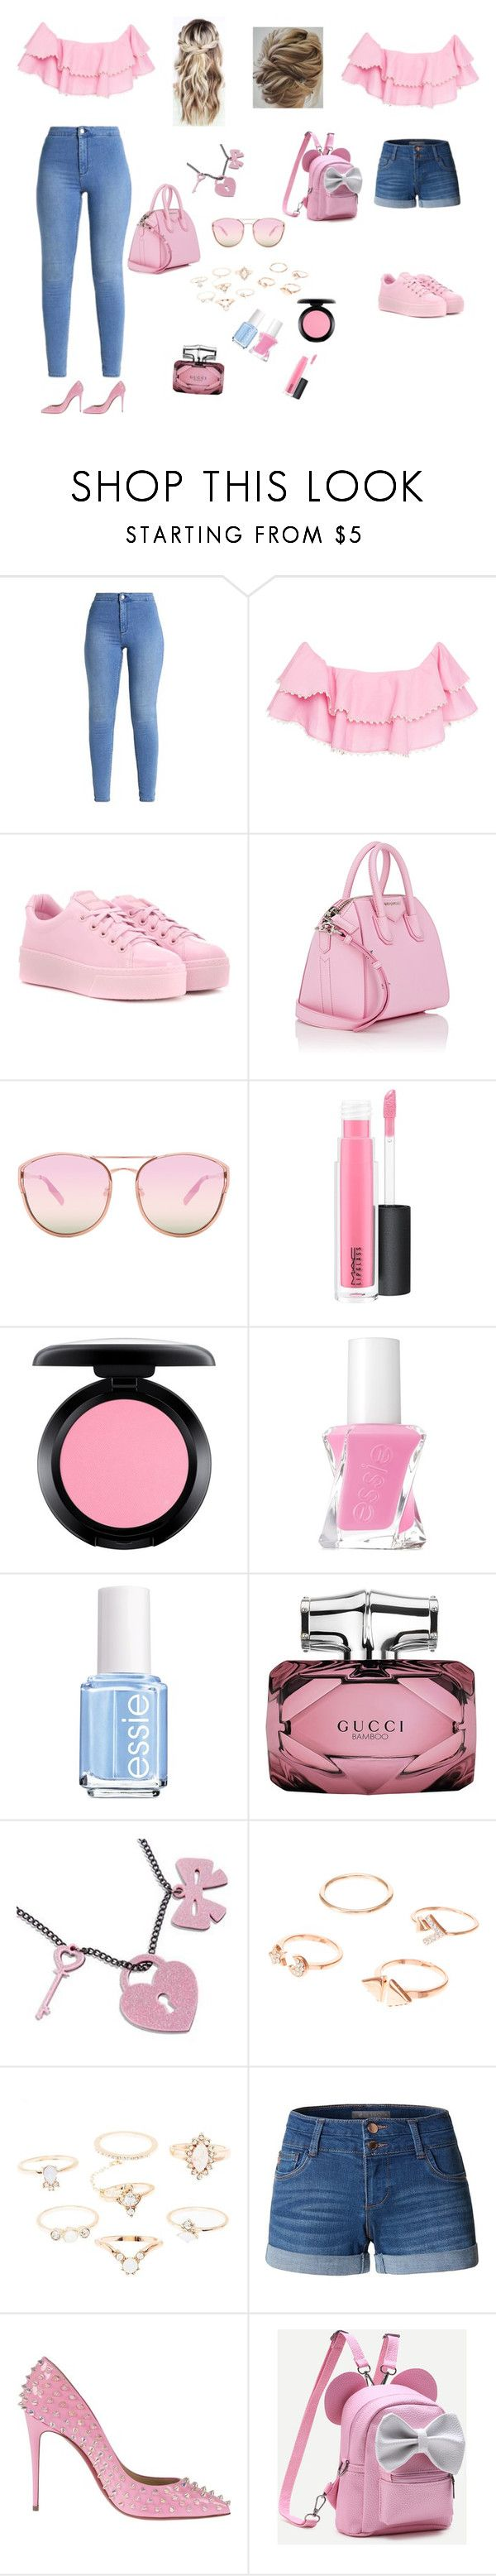 """Pinky day💕"" by hallaksally03 ❤ liked on Polyvore featuring Zayan The Label, Kenzo, Givenchy, Quay, MAC Cosmetics, Essie, Gucci, Sweet & Co., Charlotte Russe and LE3NO"